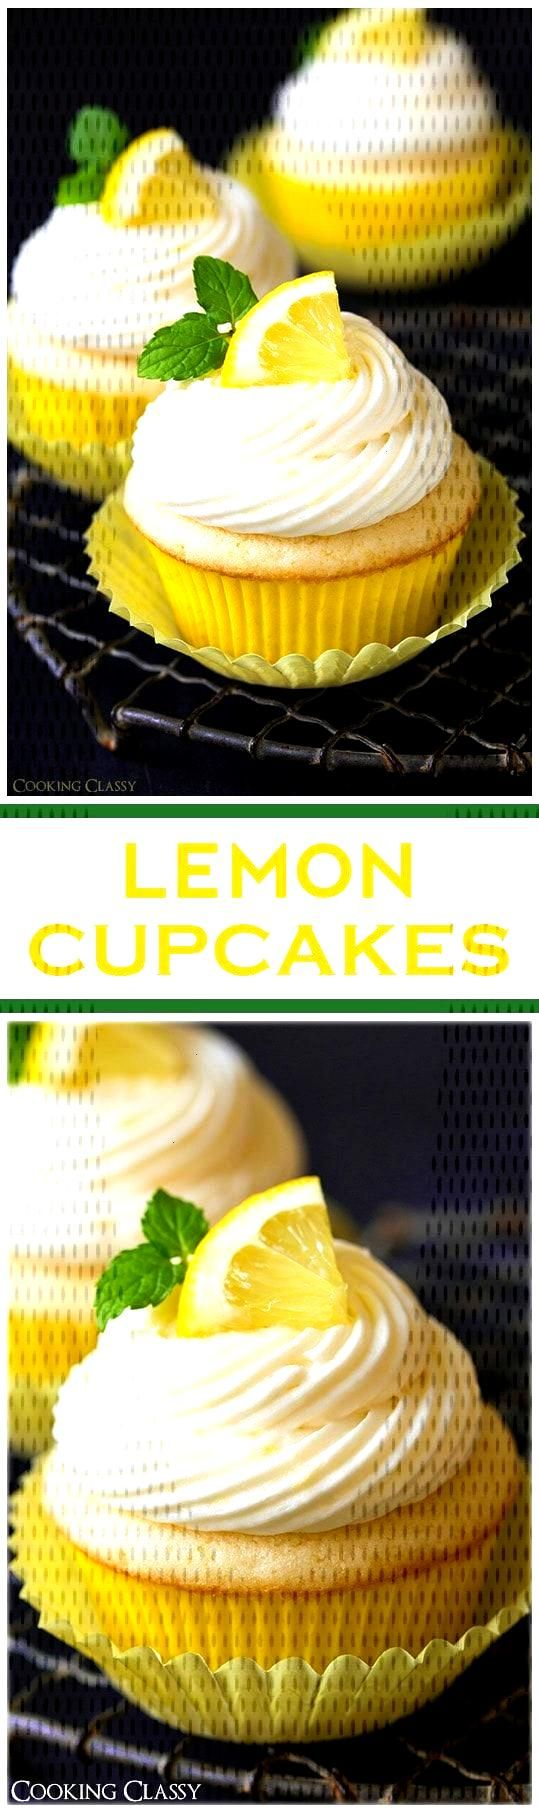 These Lemon Cupcakes with Lemon Buttercream are packed with fresh lemon flavor! Theyre the perfect